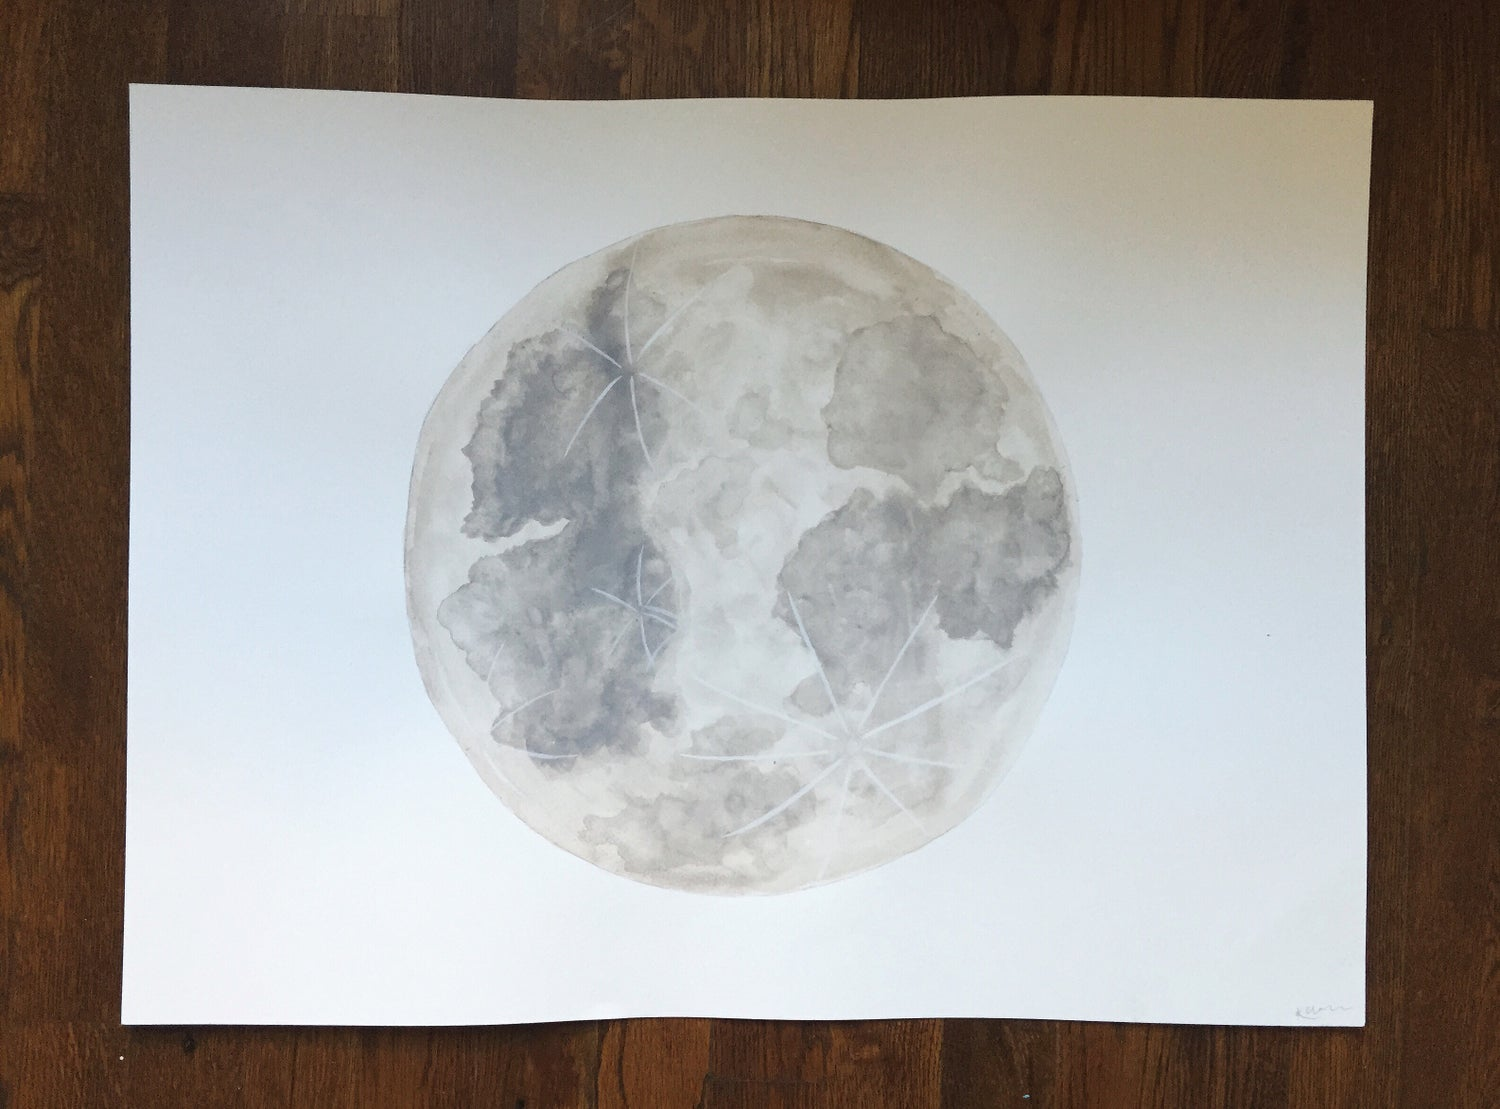 Image of Moon 18x24